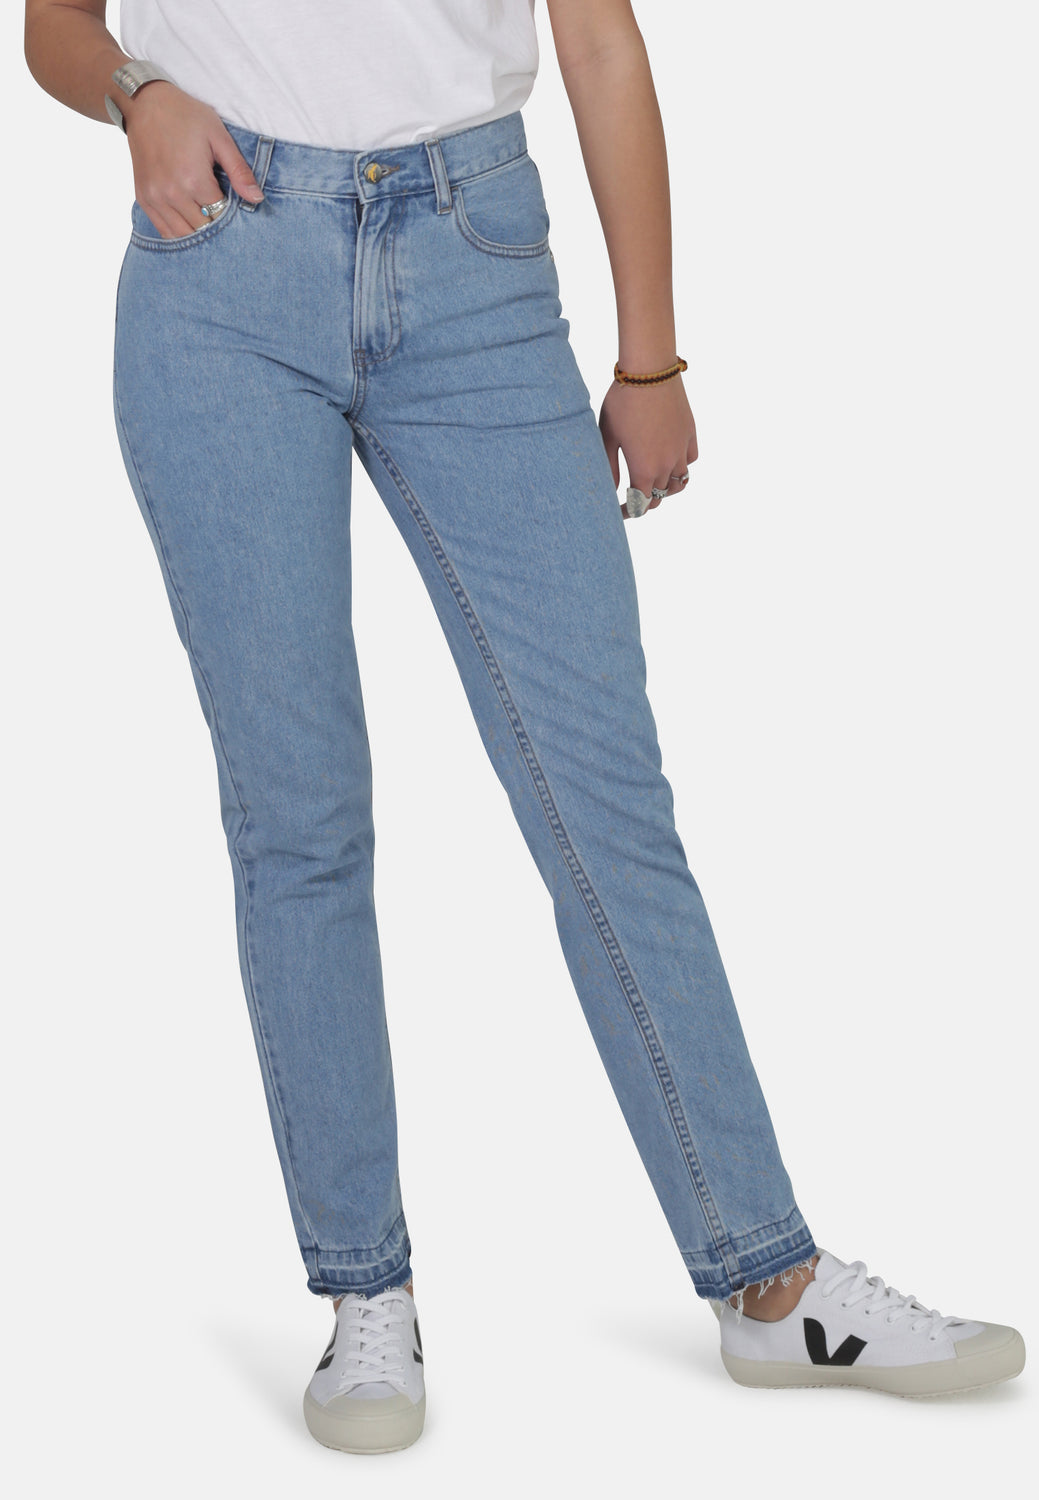 REBECCA // Organic Straight Leg Mom Jeans with Busted Hem - Monkee Genes Organic Jeans Denim - Women's Loose Fit Monkee Genes Official  Monkee Genes Official